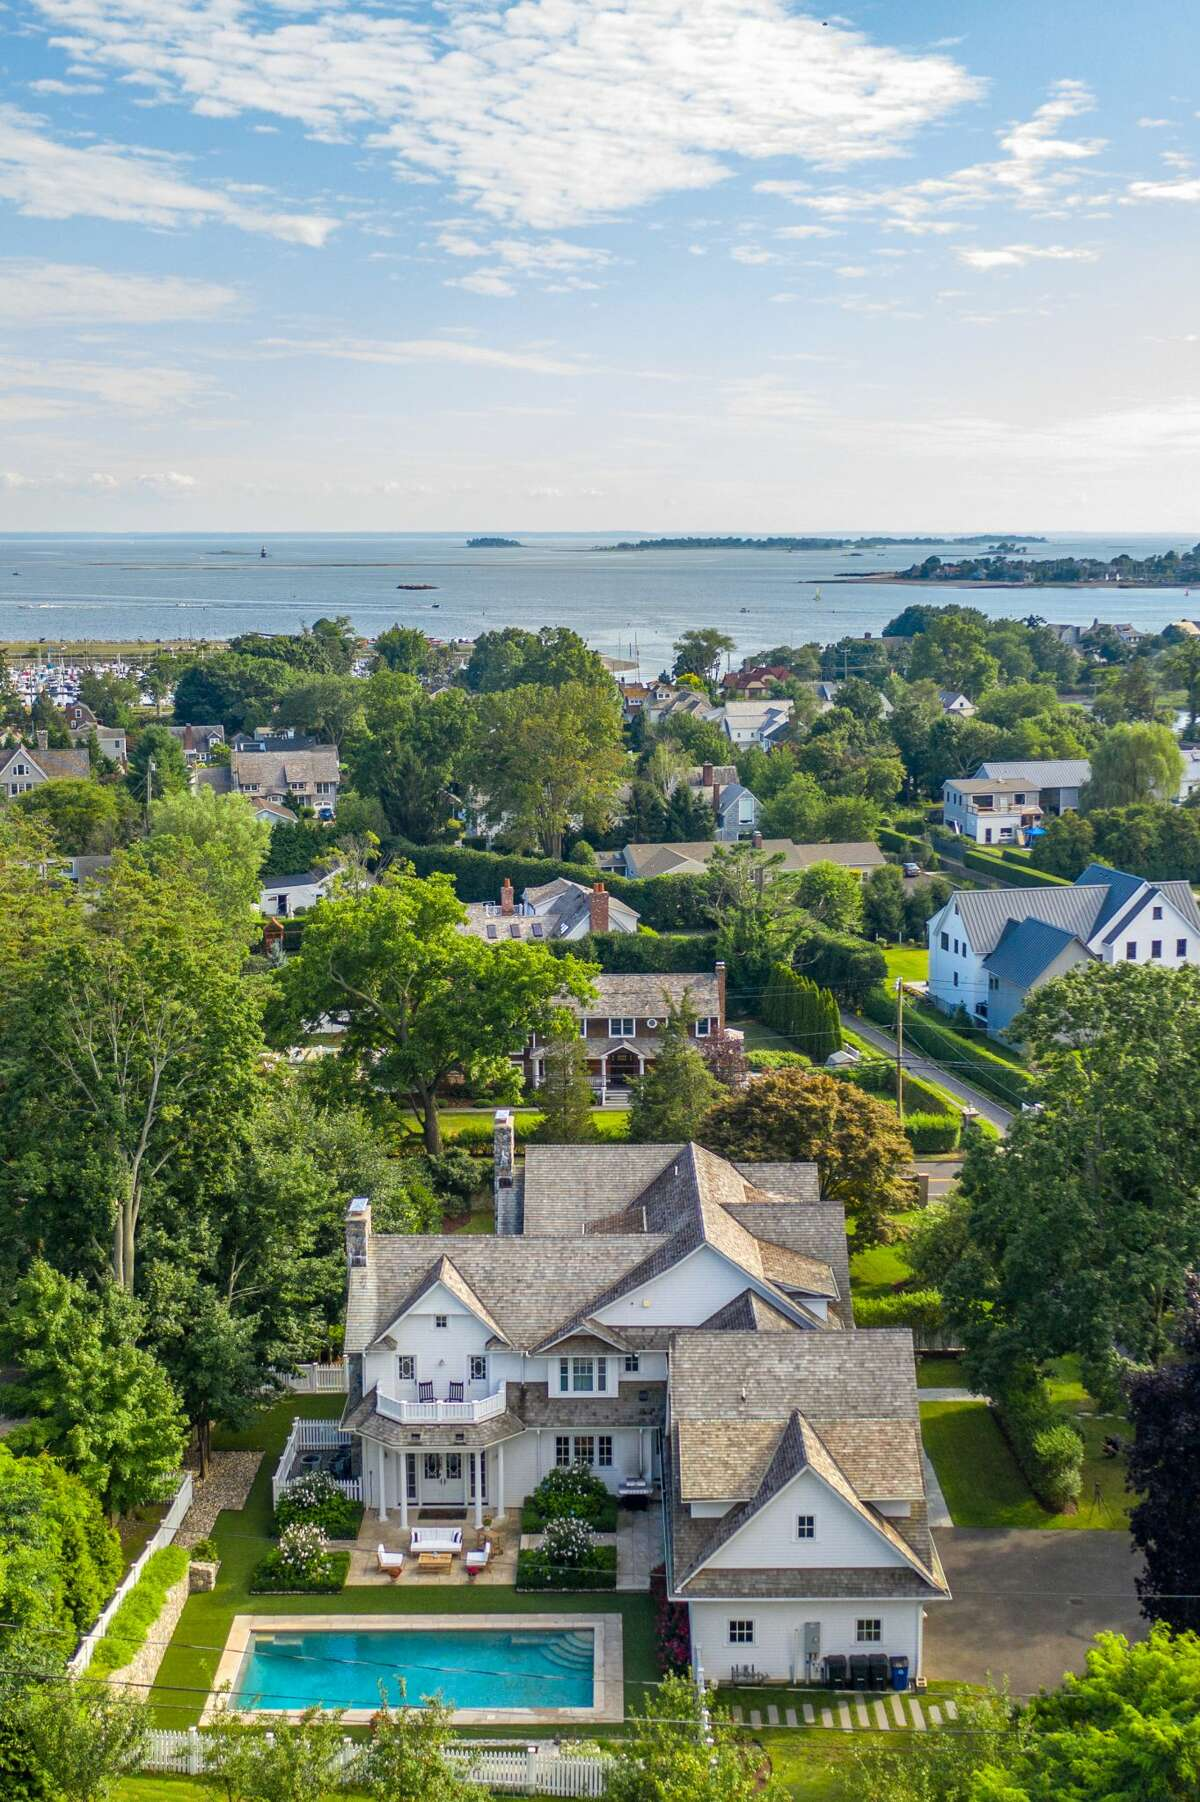 This house, at 2 Hidden Hill Road, Westport in the Compo Beach neighborhood, is only blocks from Long Island Sound and Compo Beach.